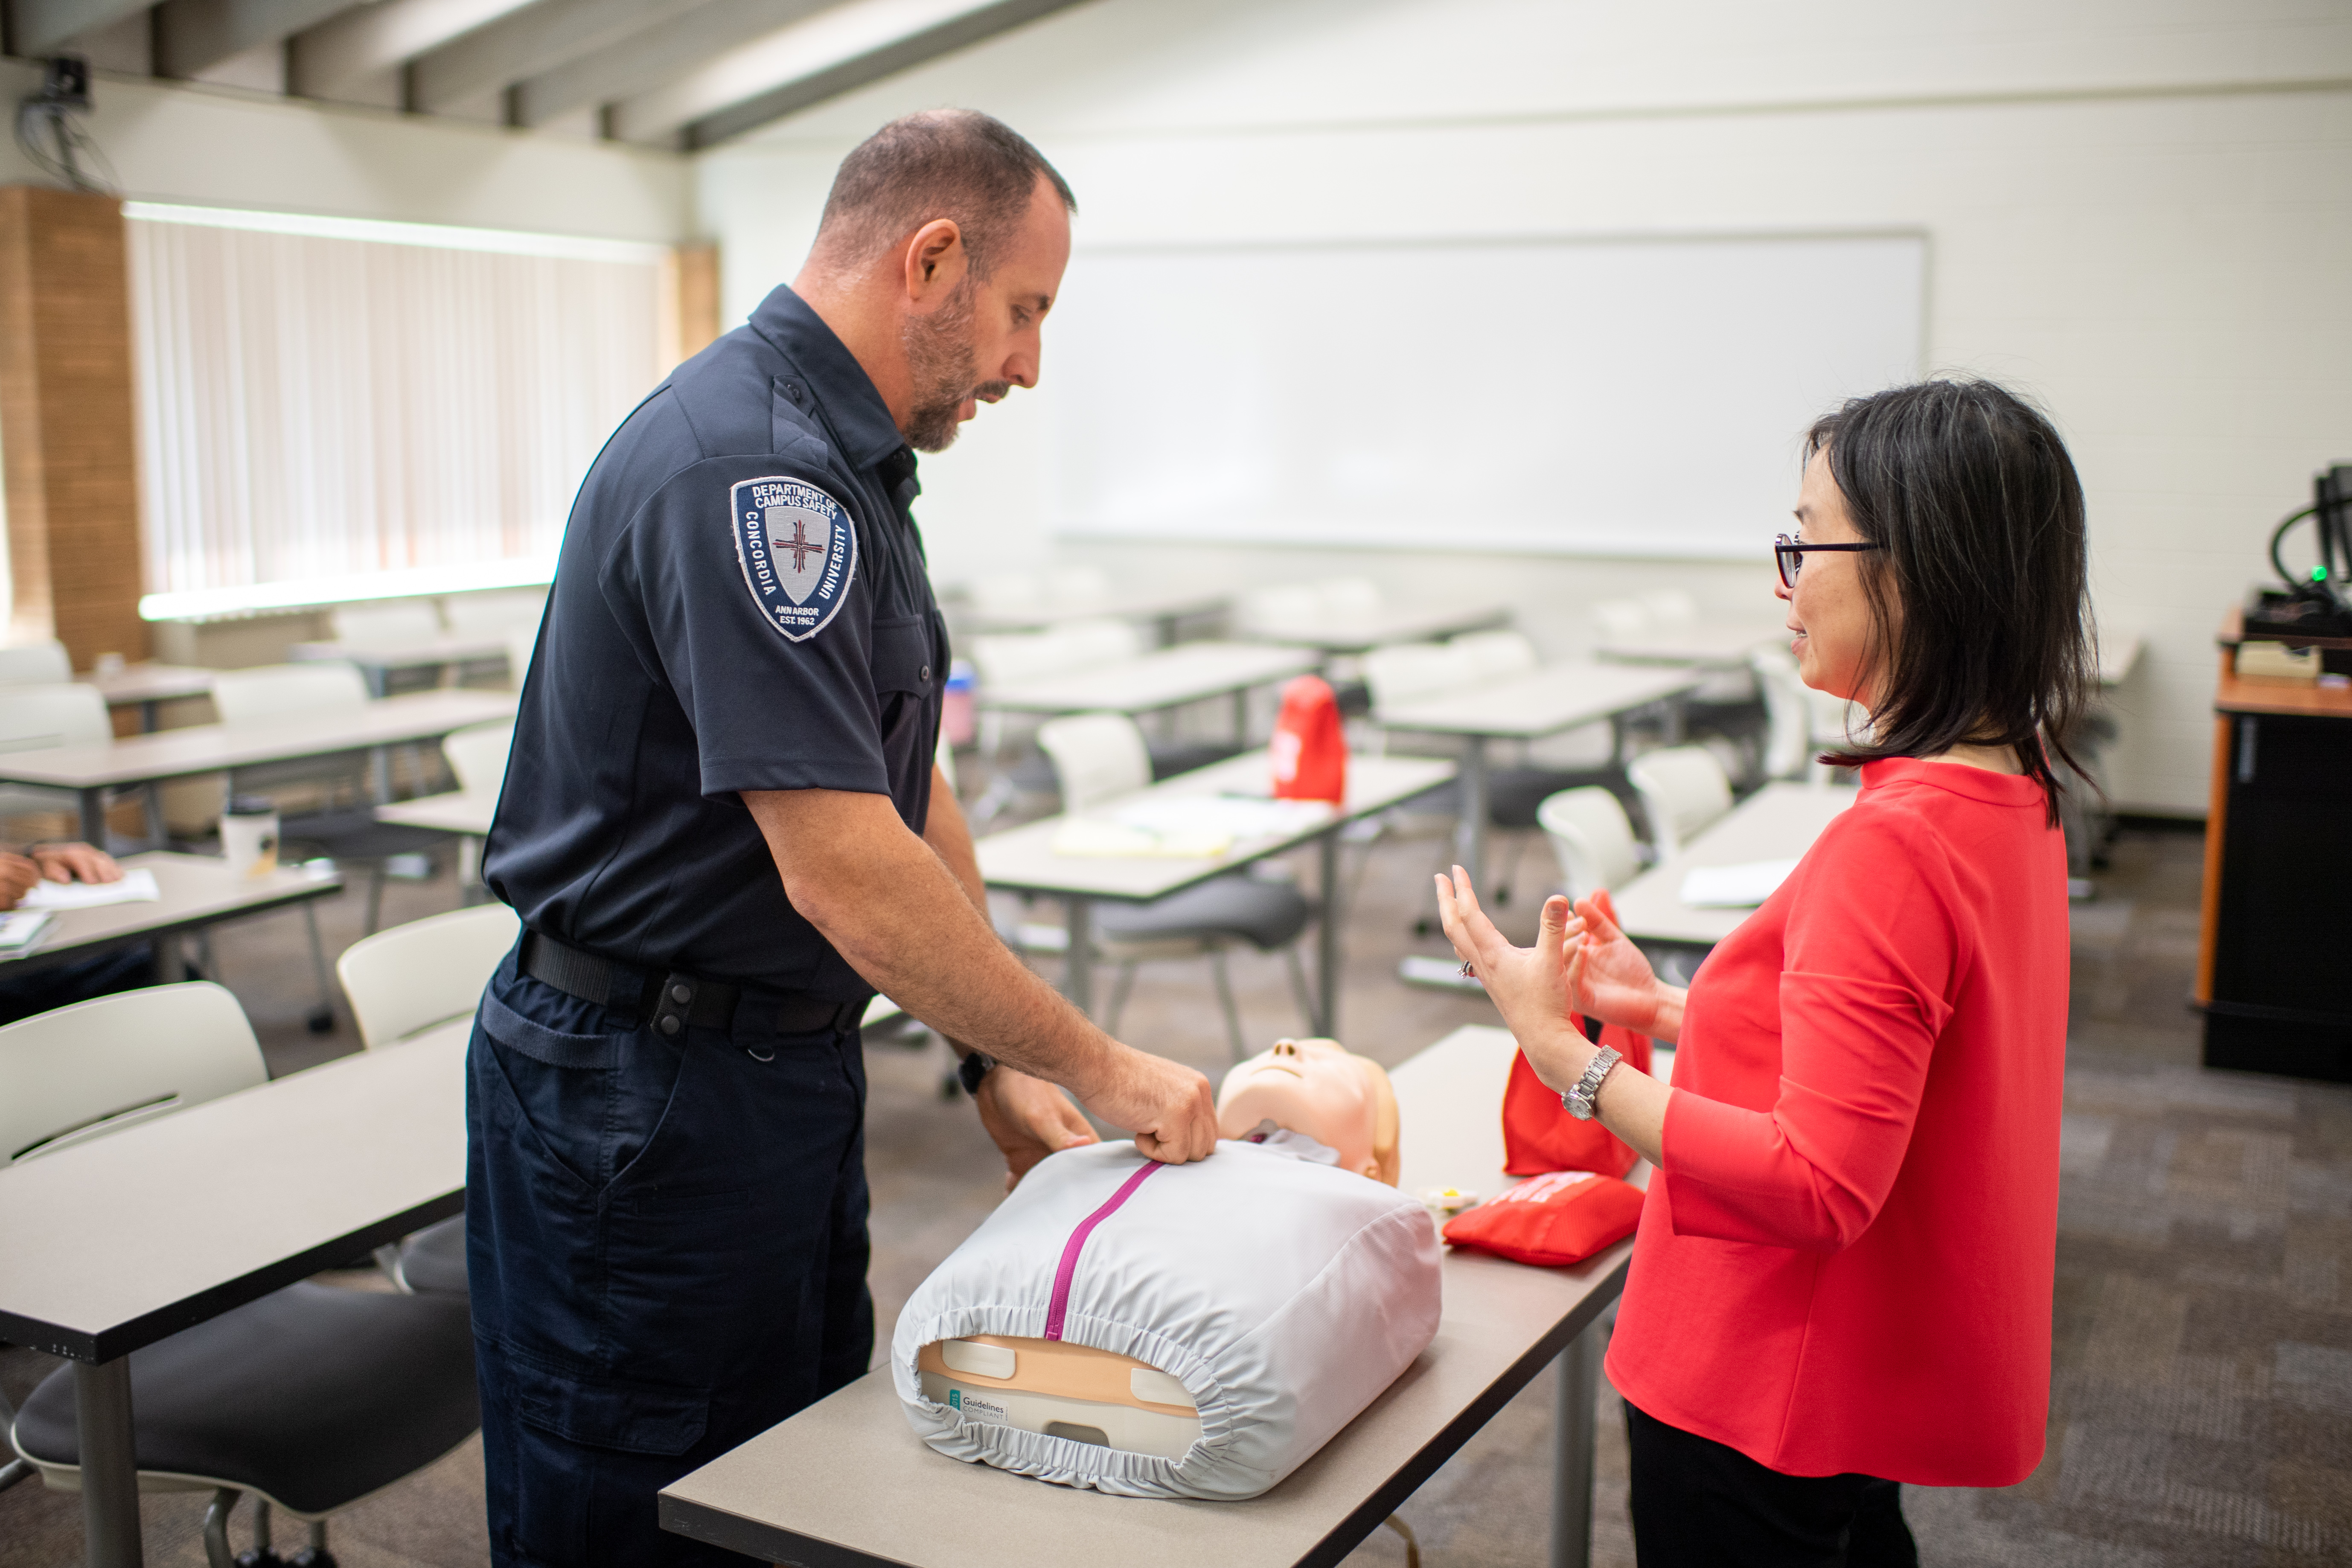 Chin Hwa (Gina) Dahlem discusses overdose treatment with Christopher Imperati, assistant campus safety director at Concordia University. Image credit: Chris McElroy, Michigan Photography